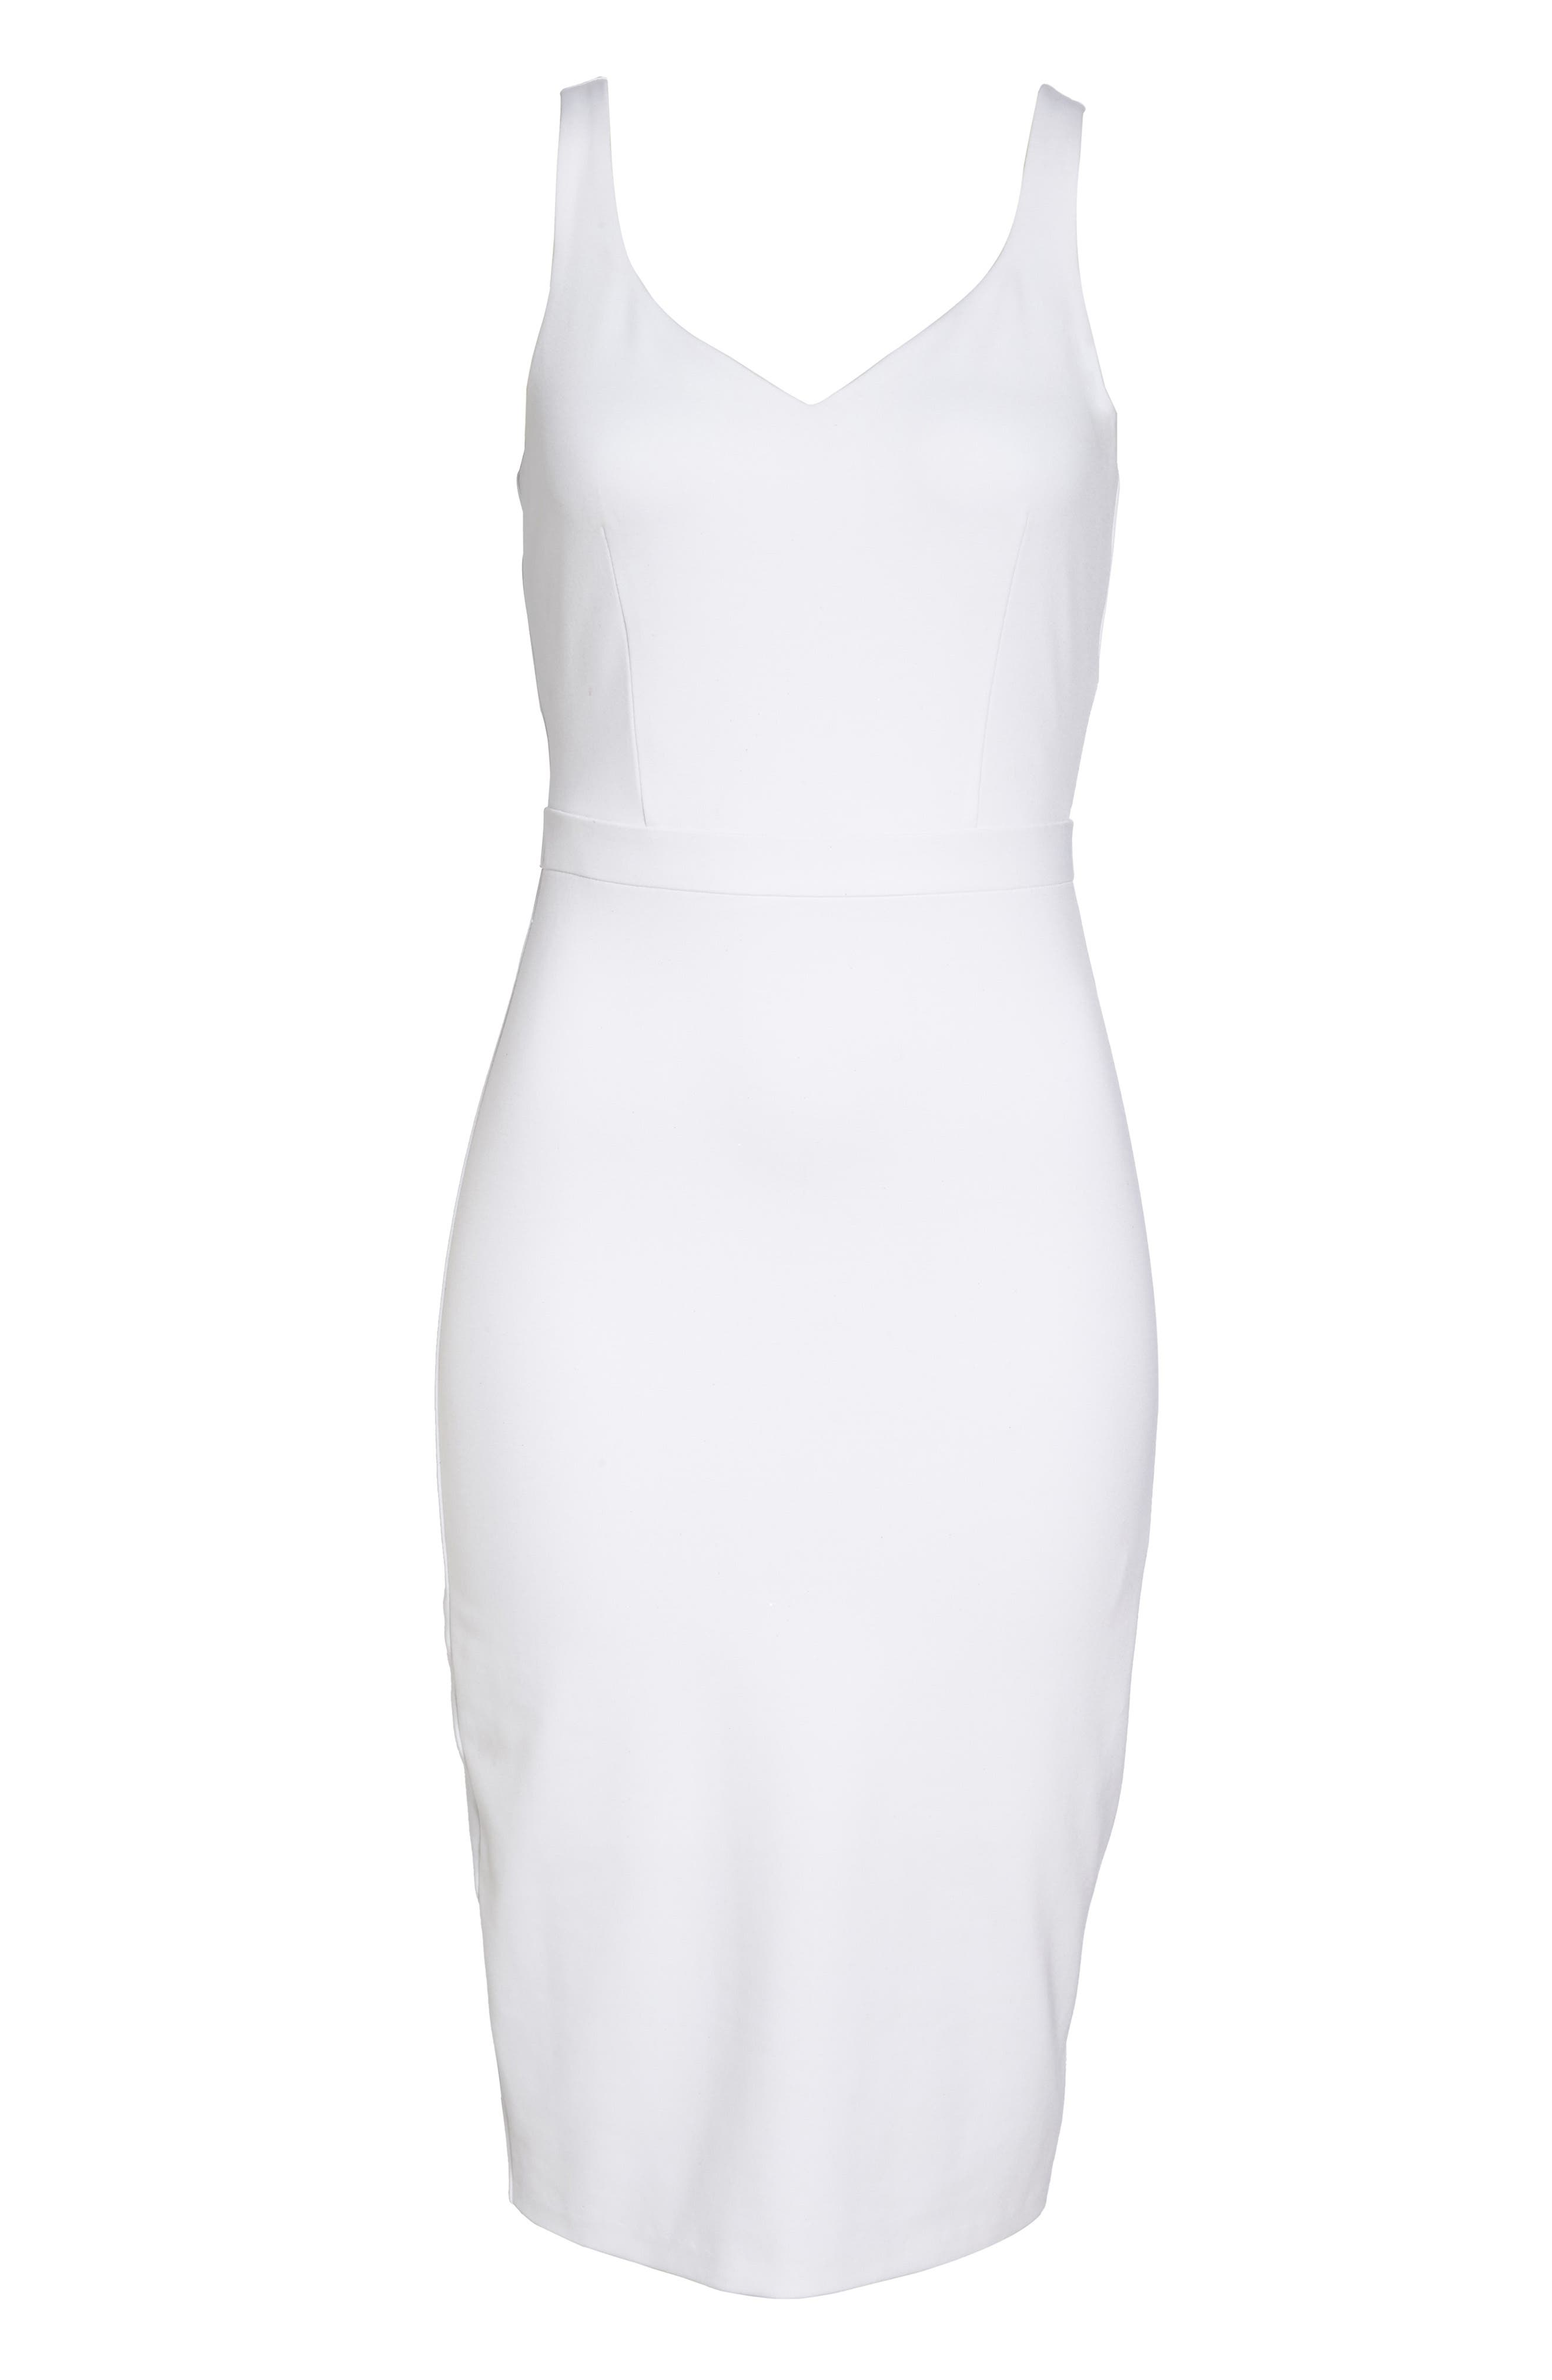 First Date Sheath Dress,                             Alternate thumbnail 6, color,                             100